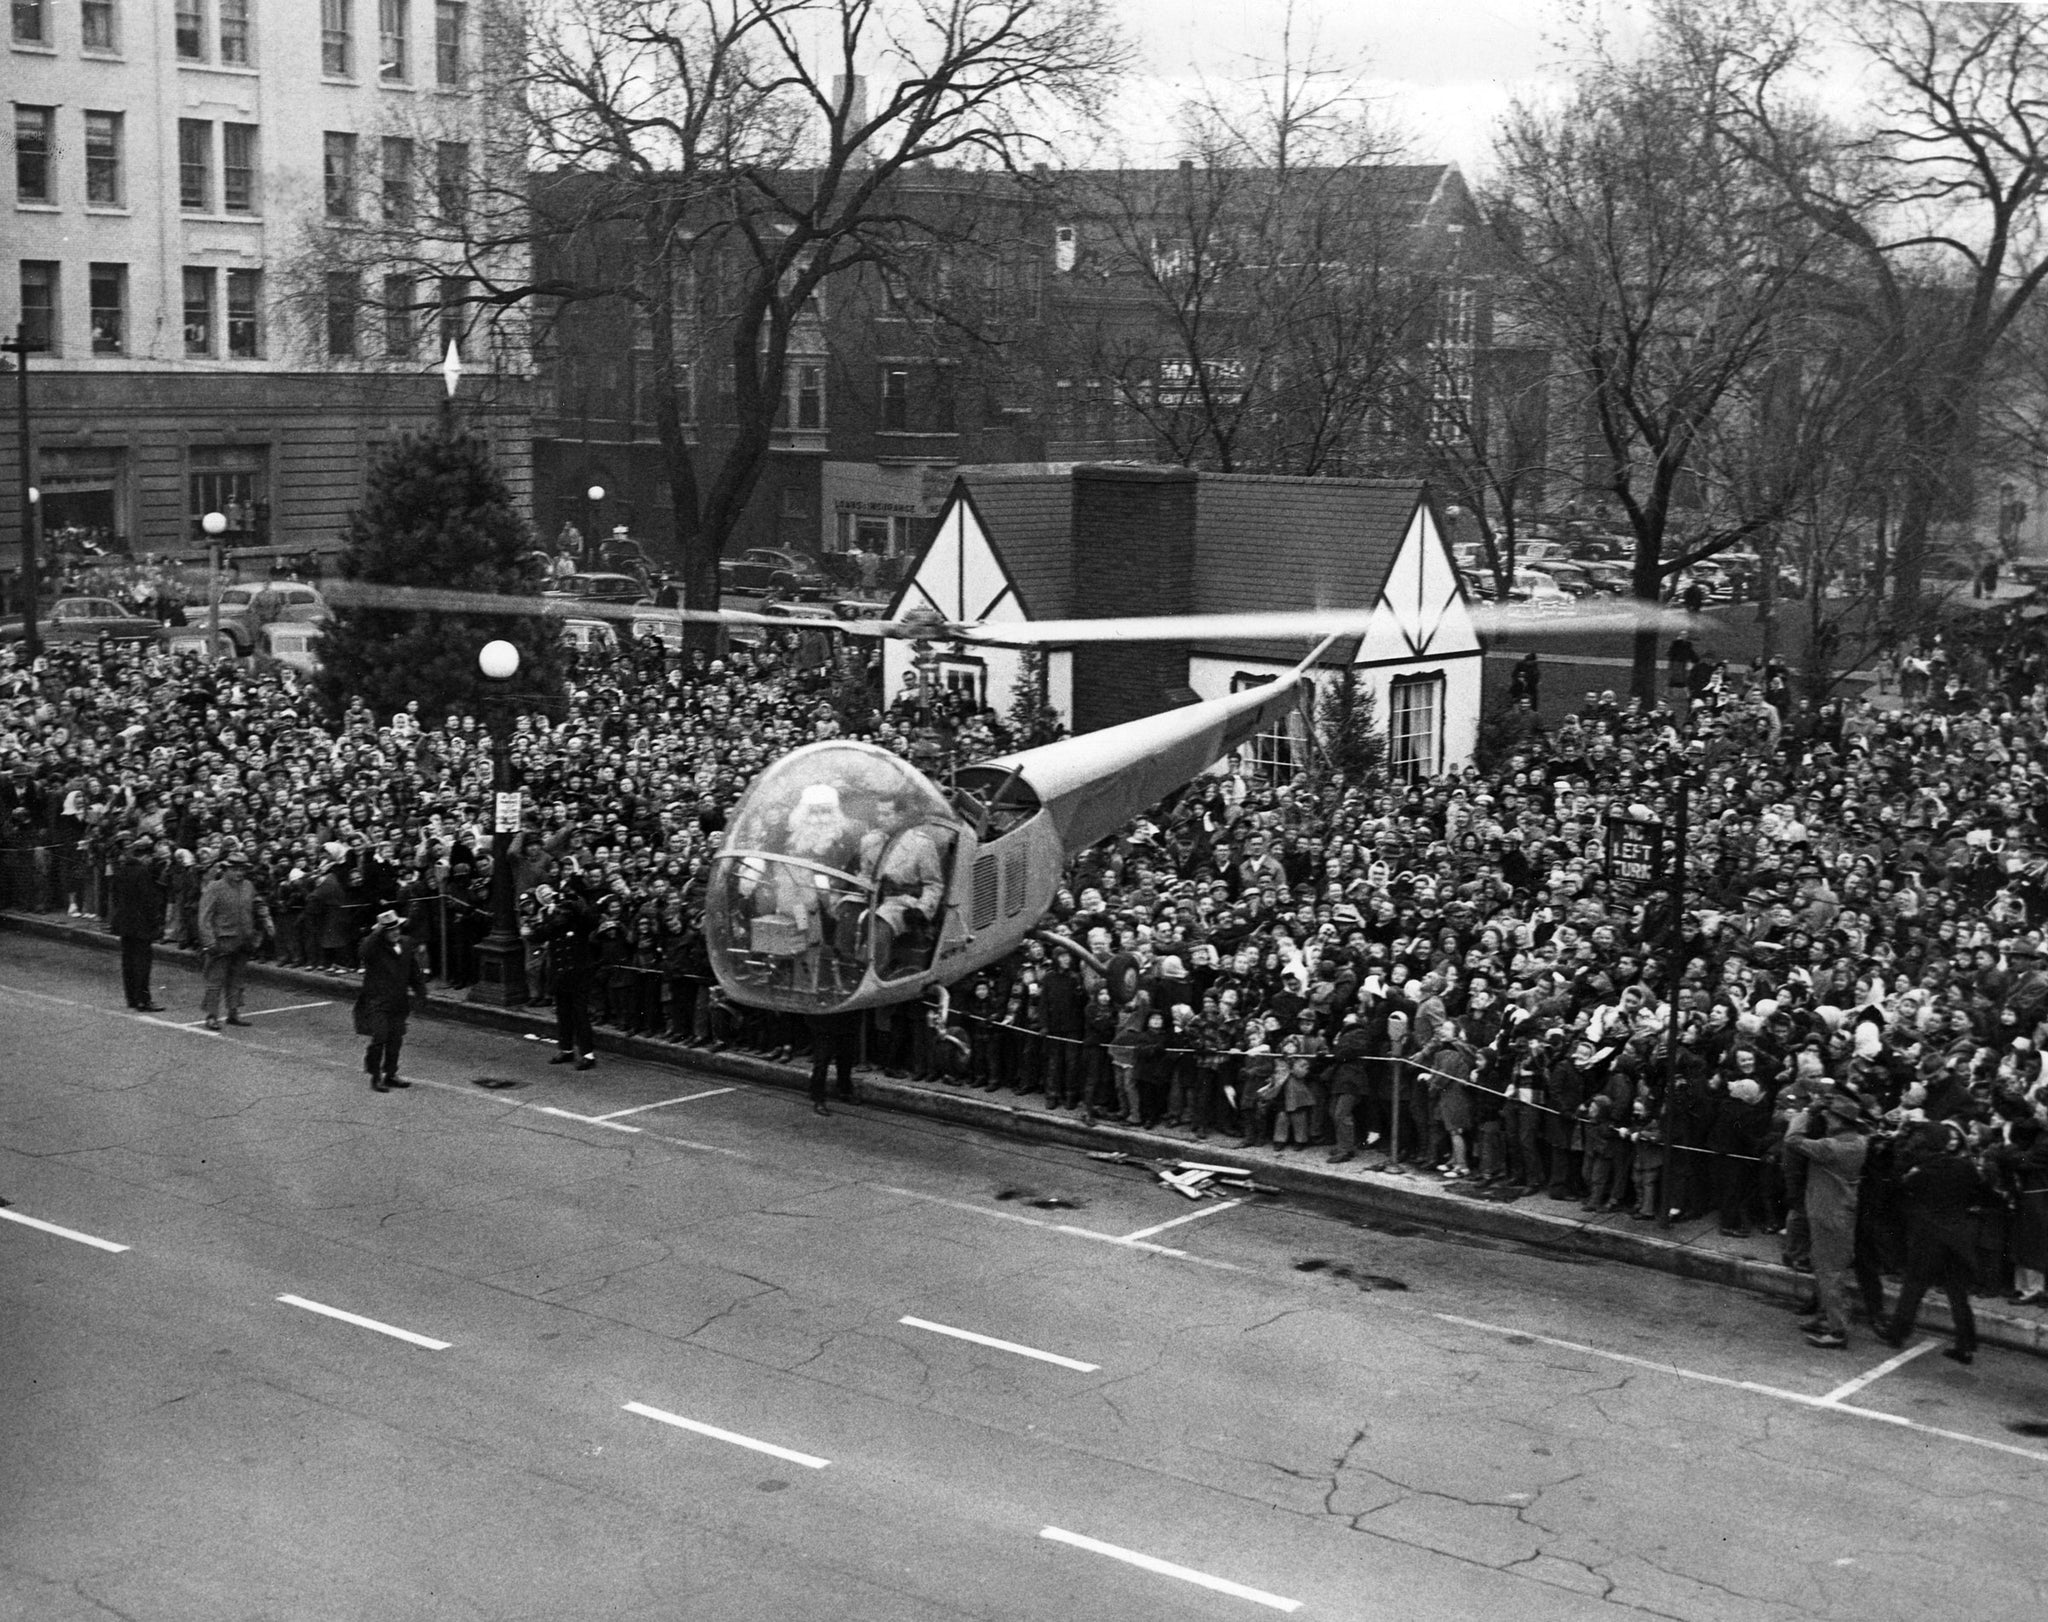 A crowd watching as Santa lands on Water Street in a helicopter, 1949. -- Herald & Review